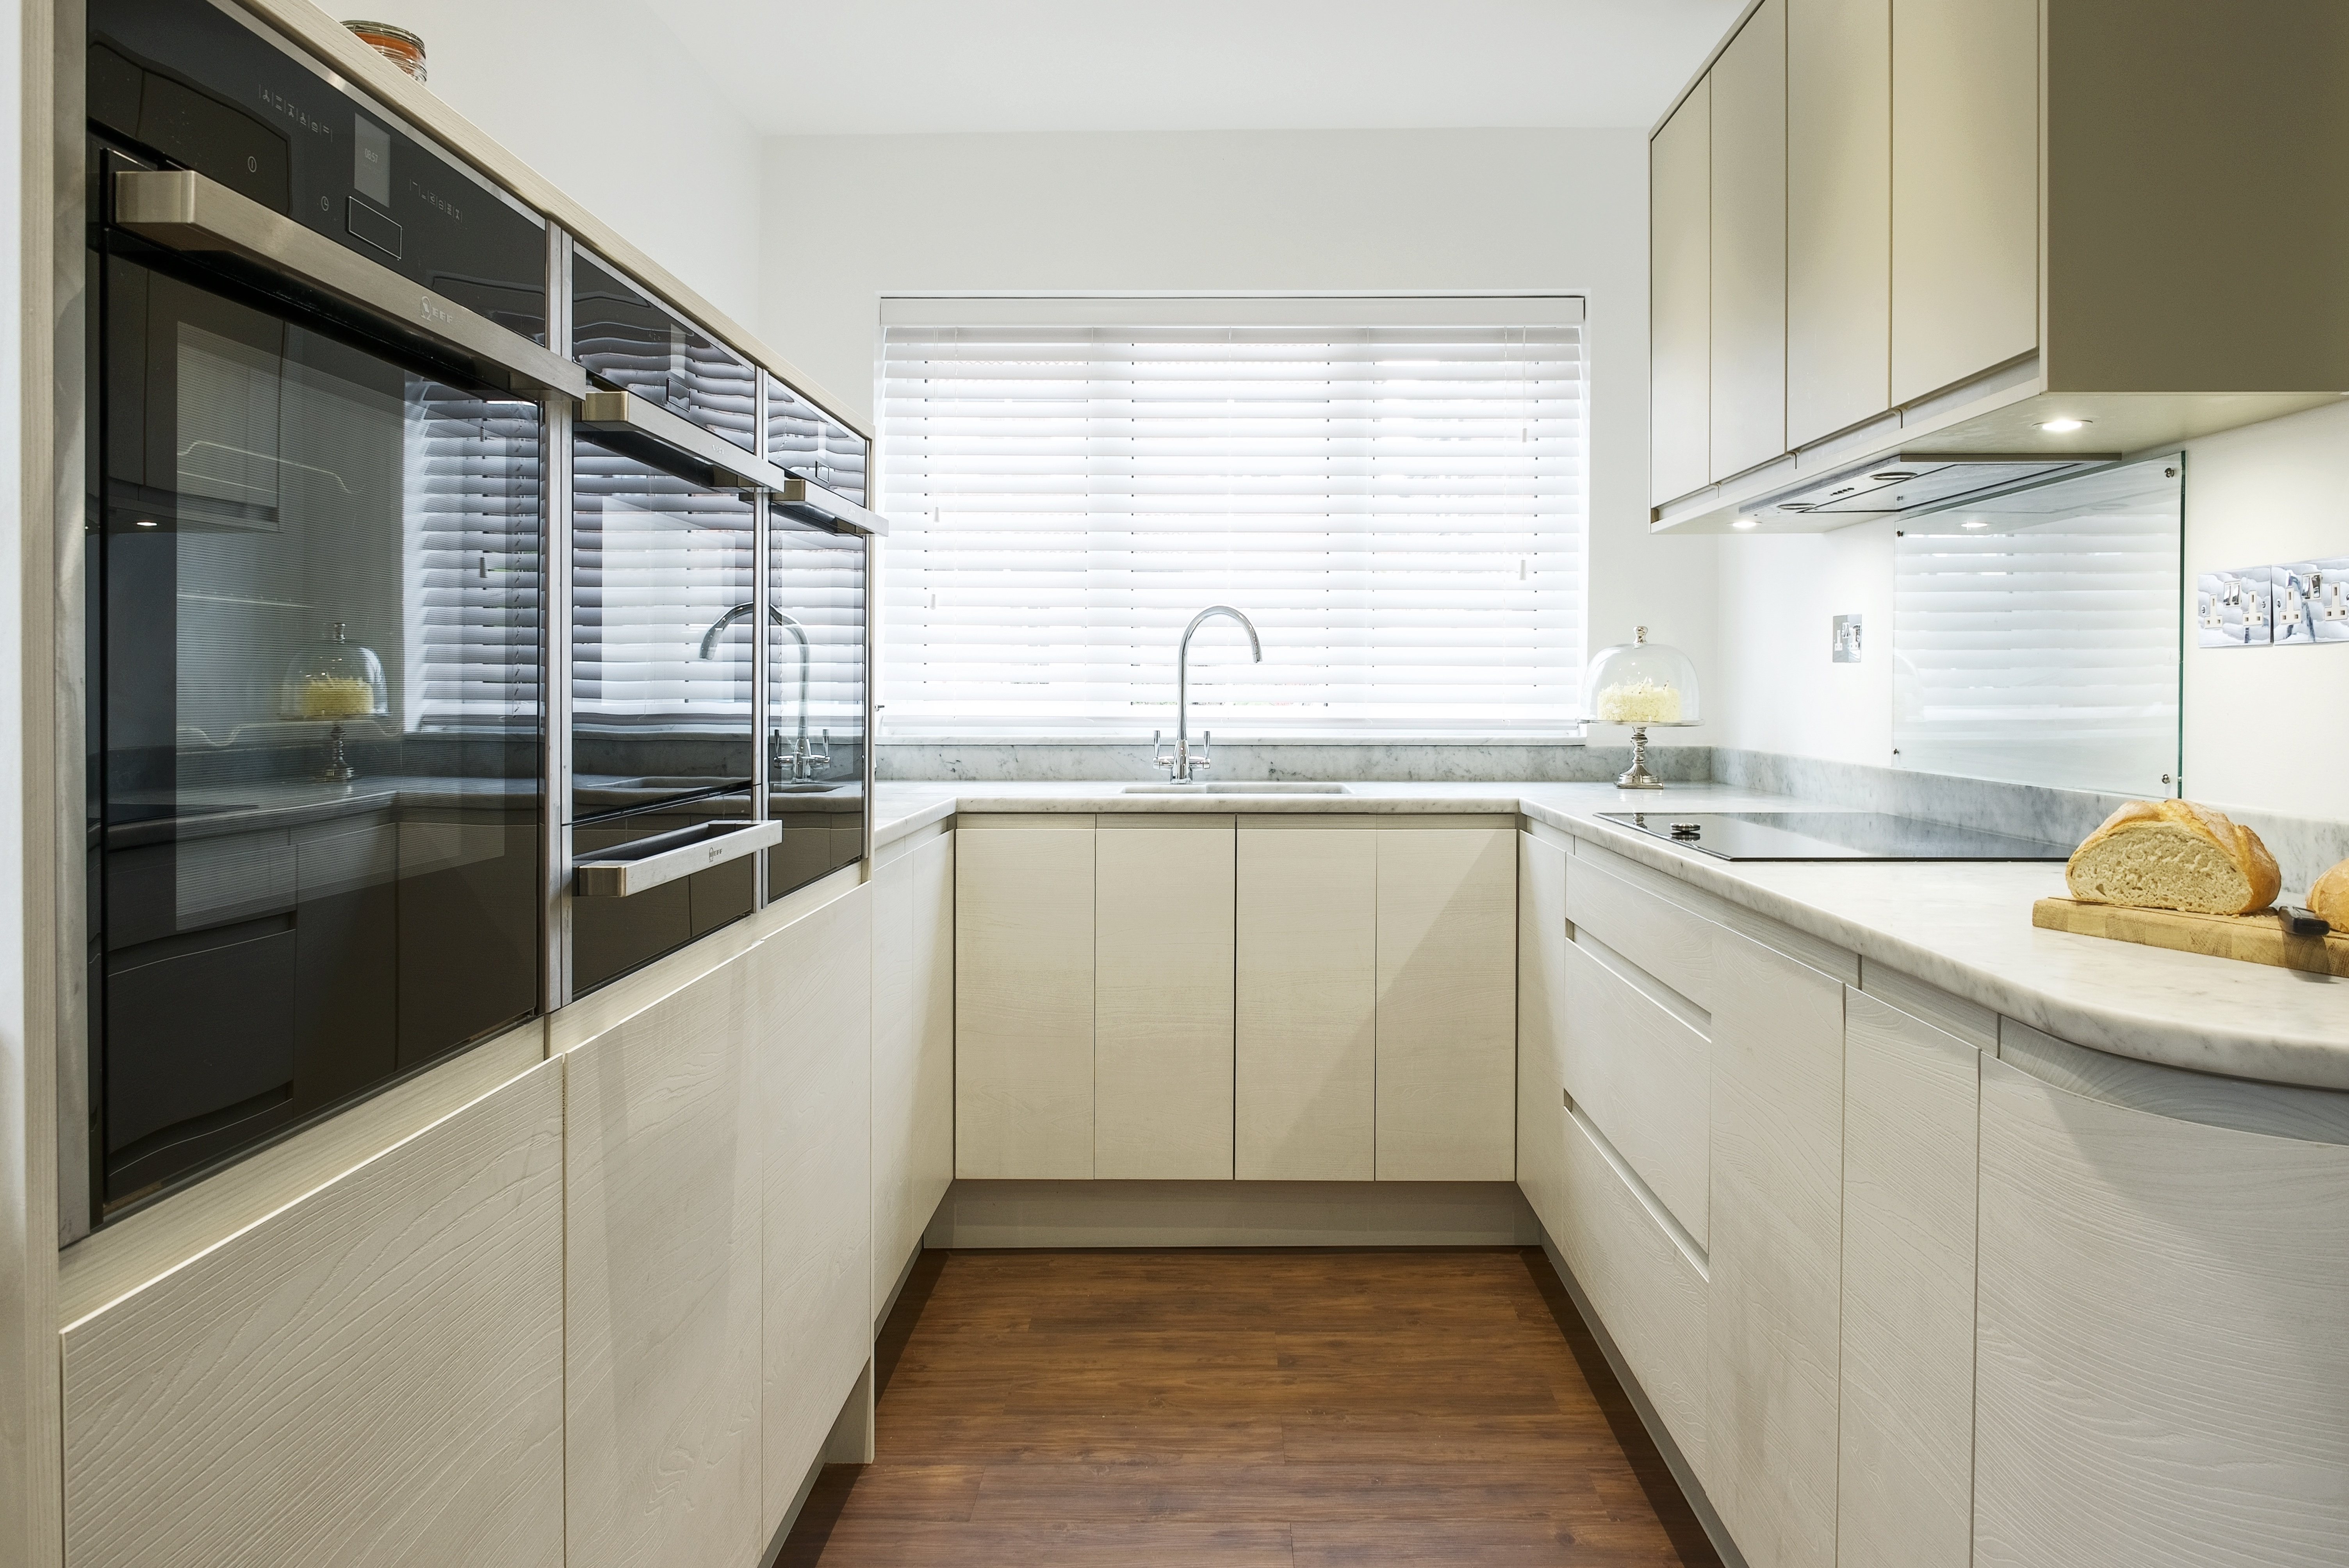 White contemporary kitchen with Carrara marble worktops and Neff slide under ovens and microwave and Kholer sink and taps.